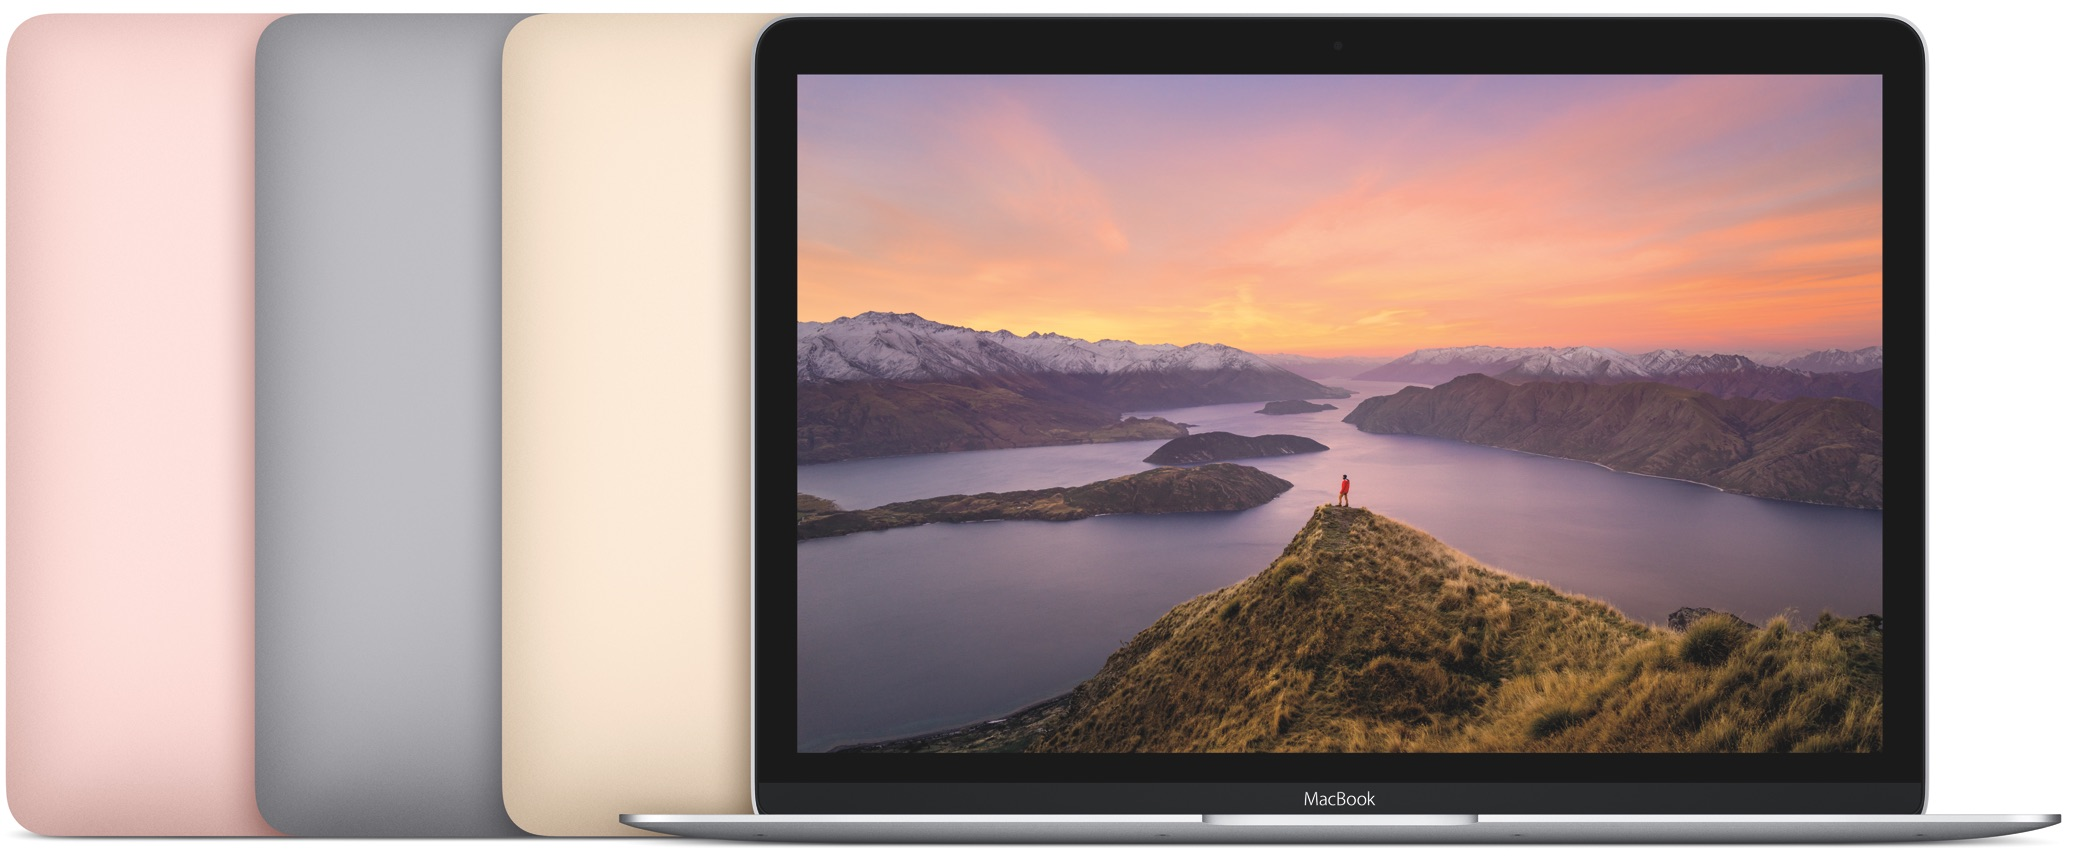 MacBook twelve-inch early-2016 family image 002